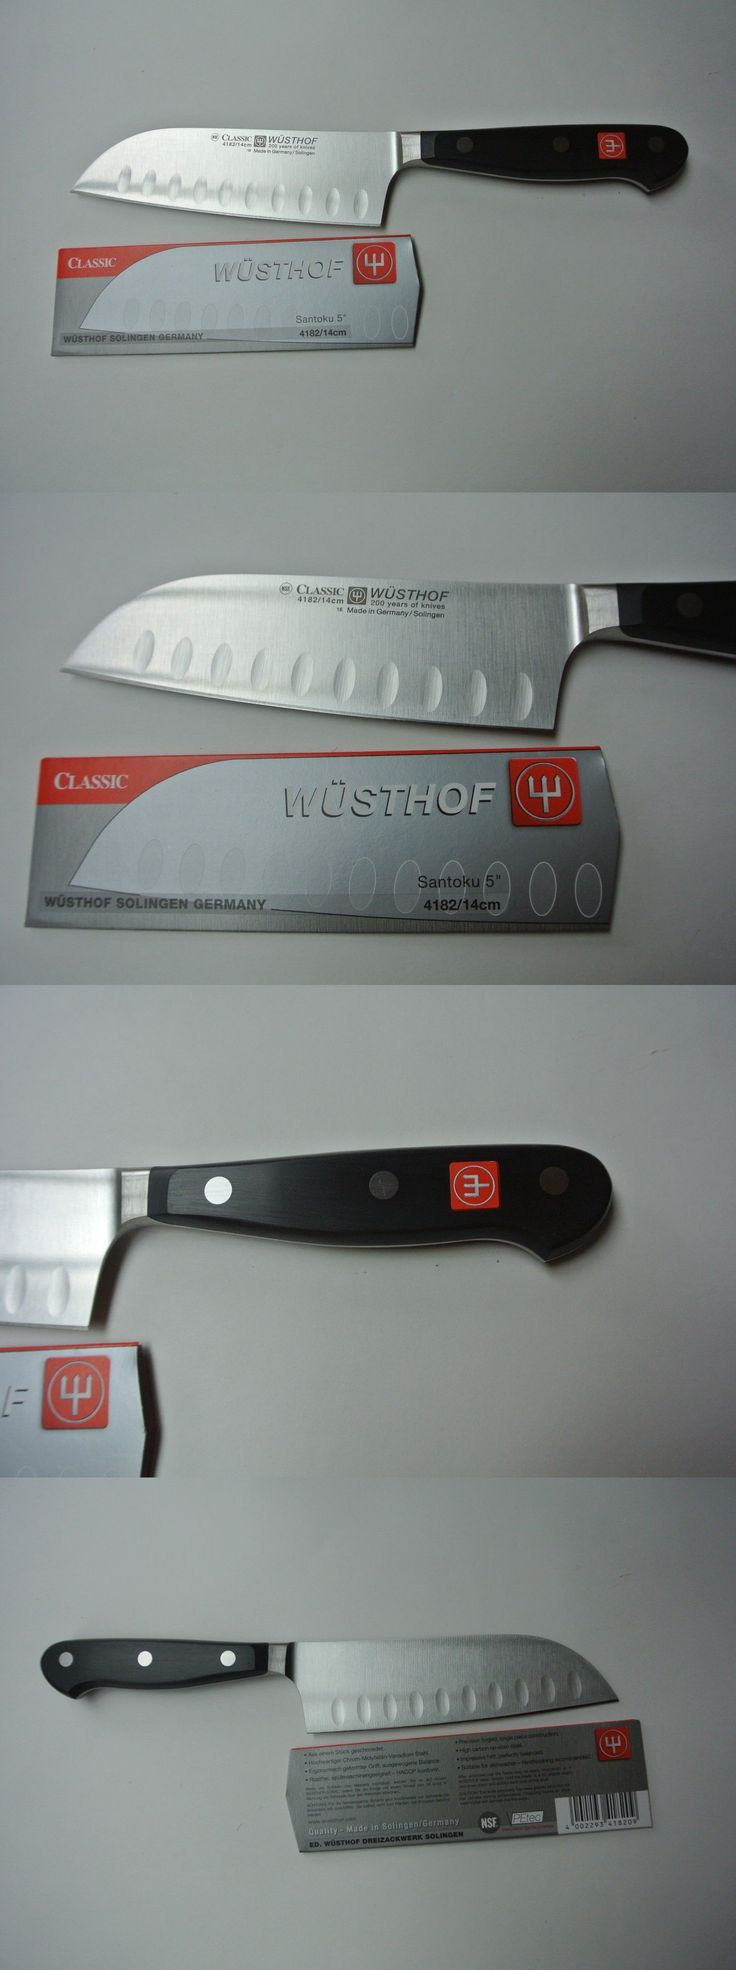 the 25 best wusthof knives ideas on pinterest wusthof knife set kitchen and steak knives 177005 brand new wusthof classic 5 santoku nsf petec